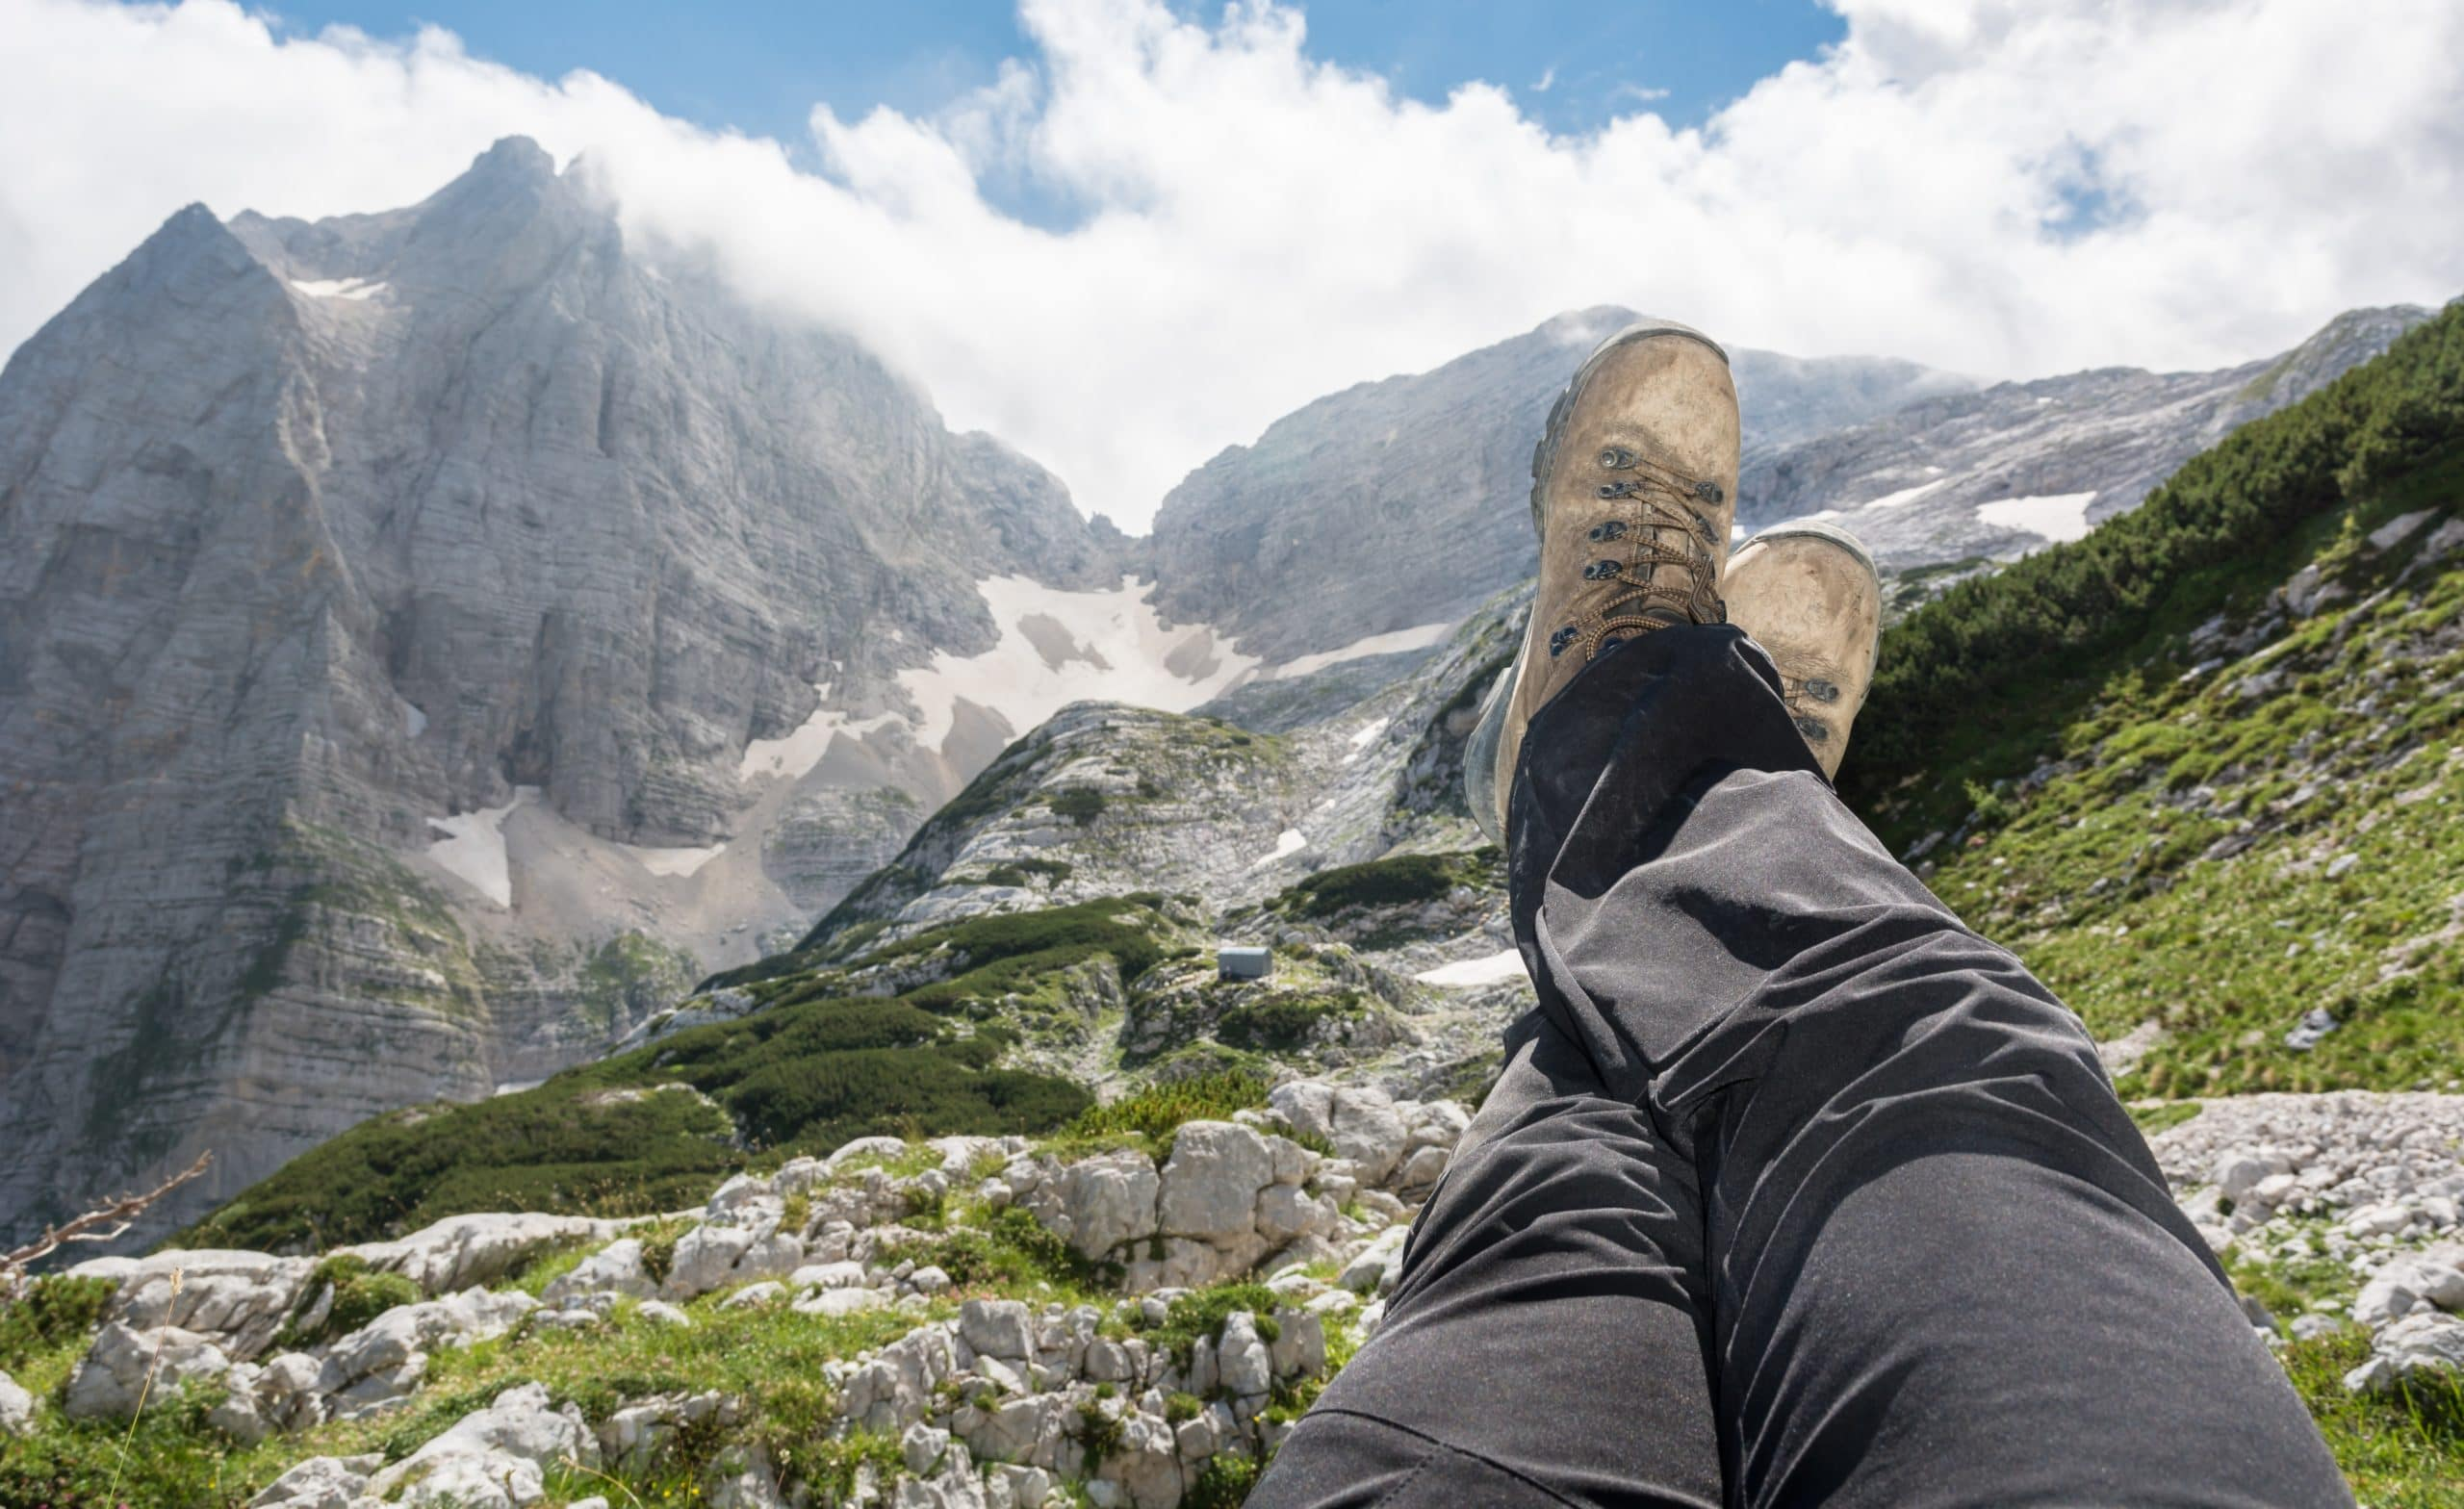 Pair of leggs stretched into the air with a mountain view